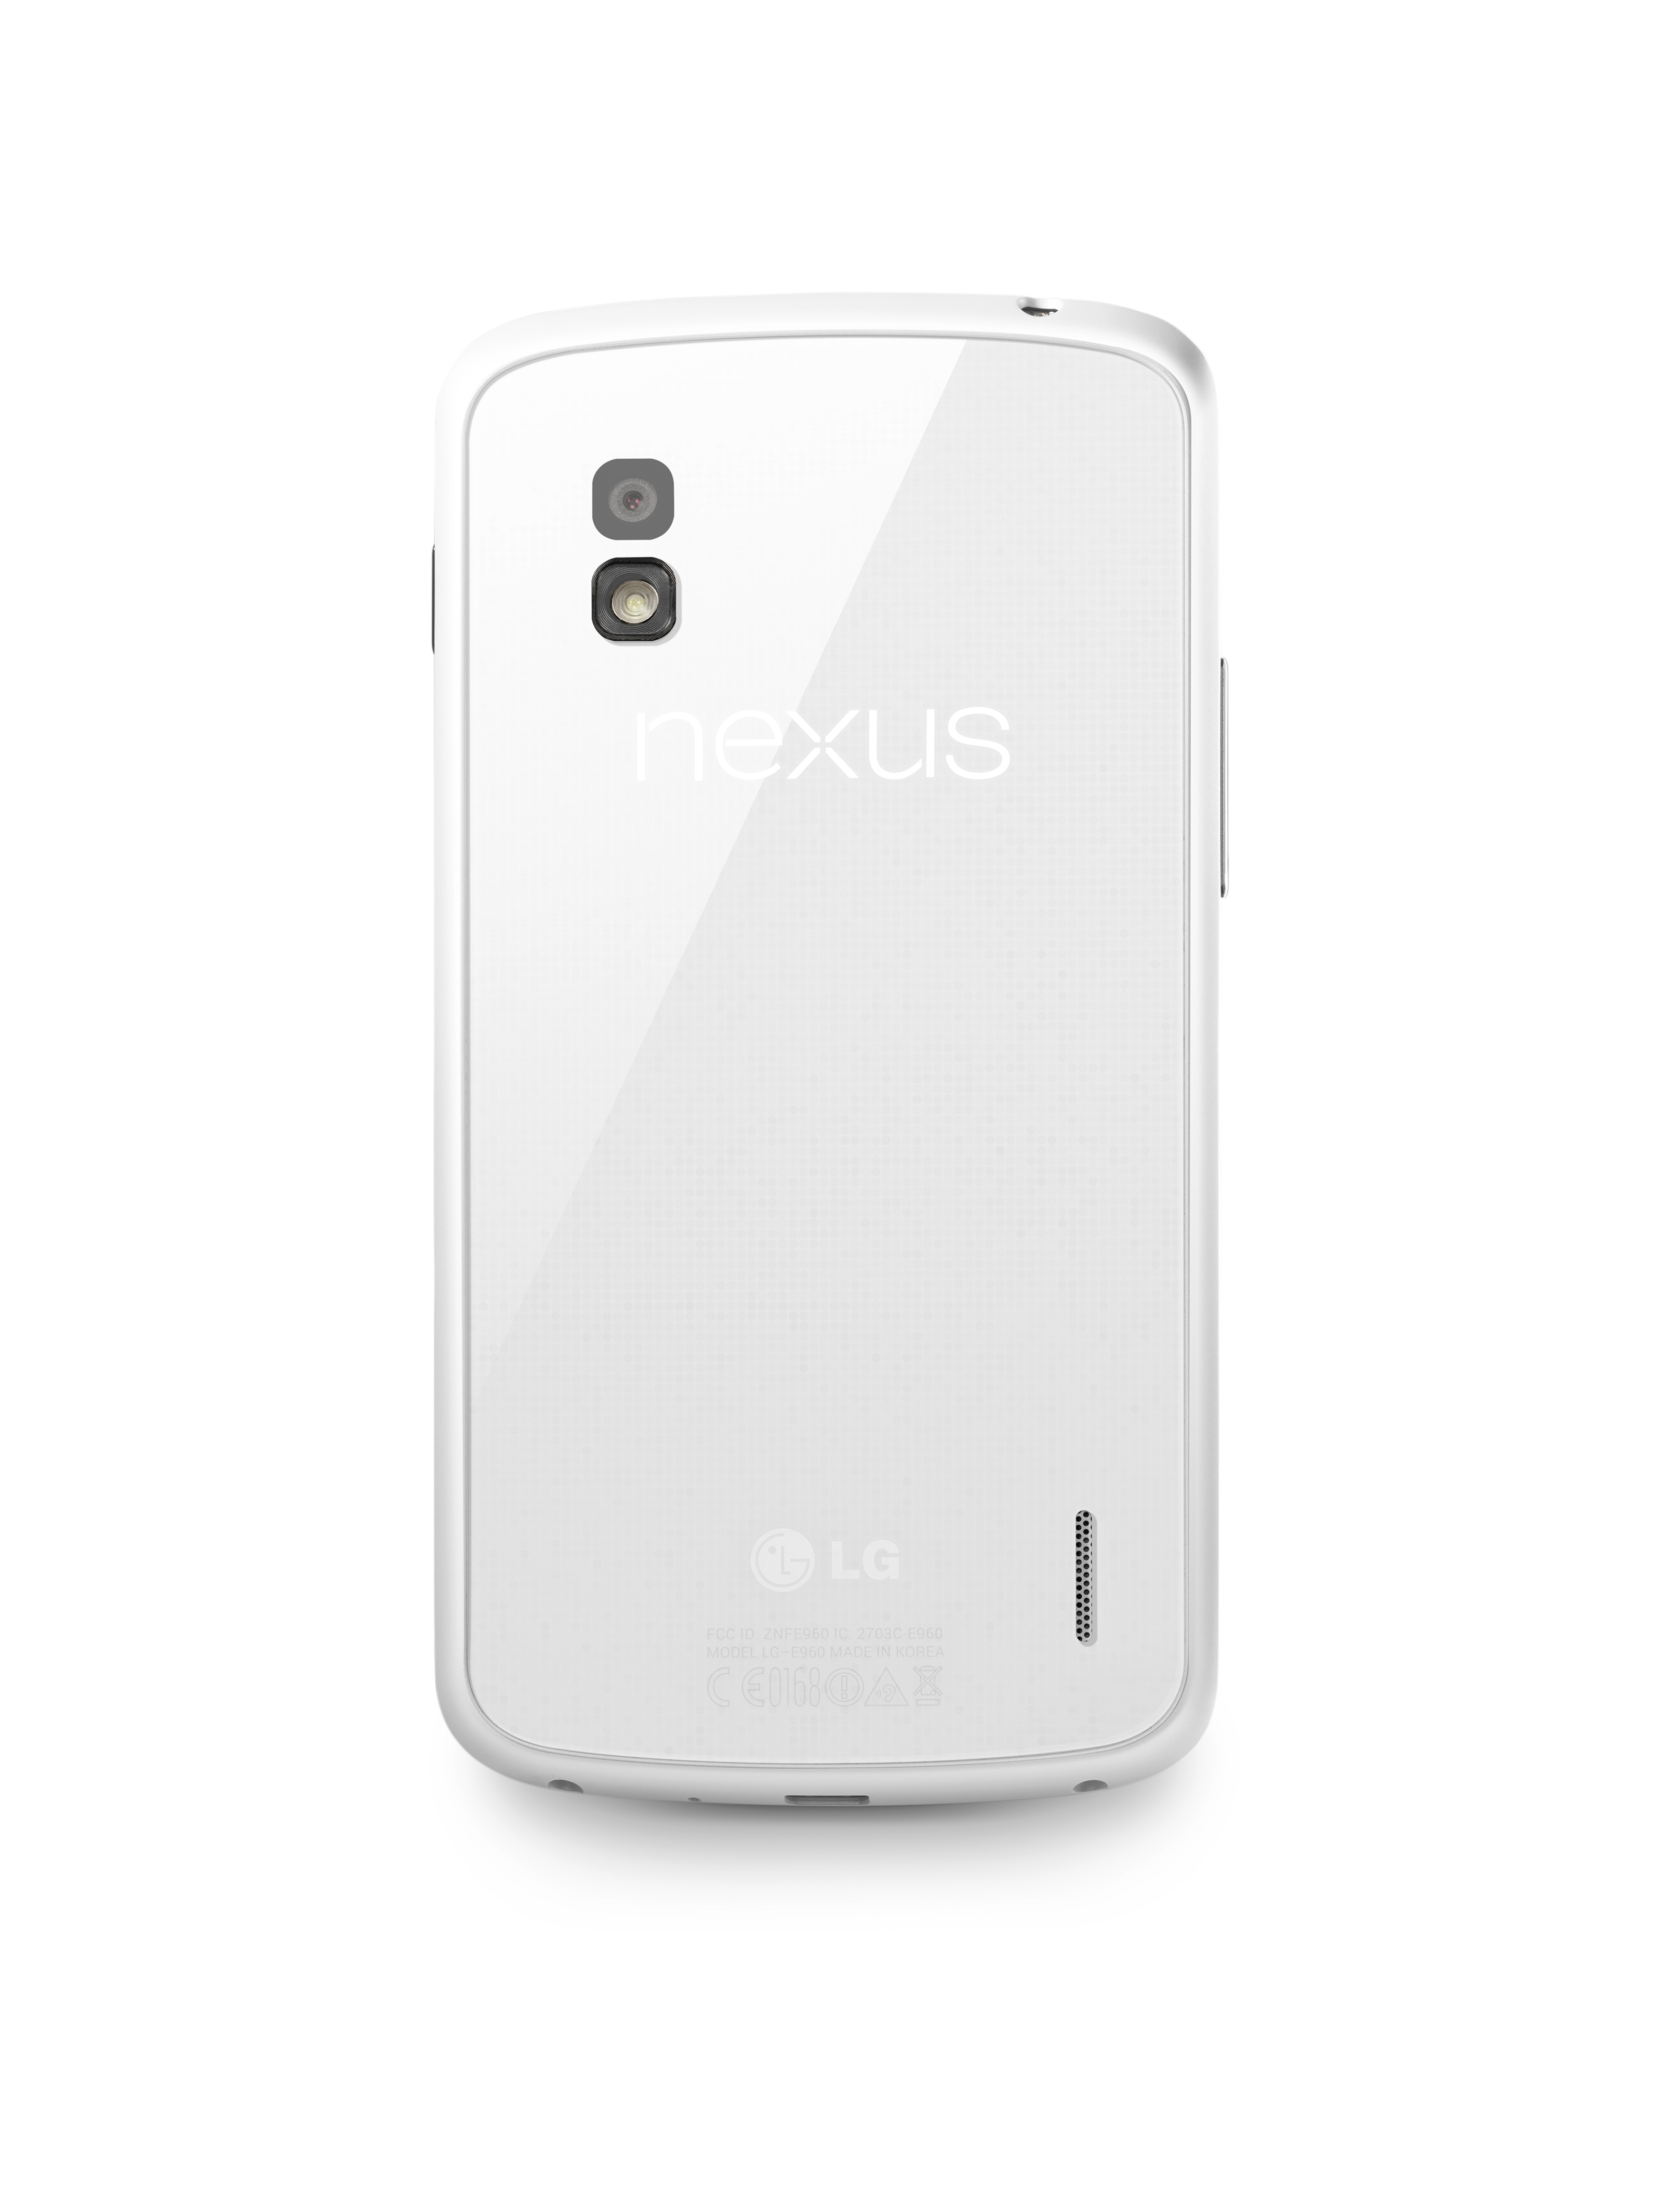 LG Announces The White Nexus 4, Quashes All Rumors That The Company Is Working On The Nexus 5